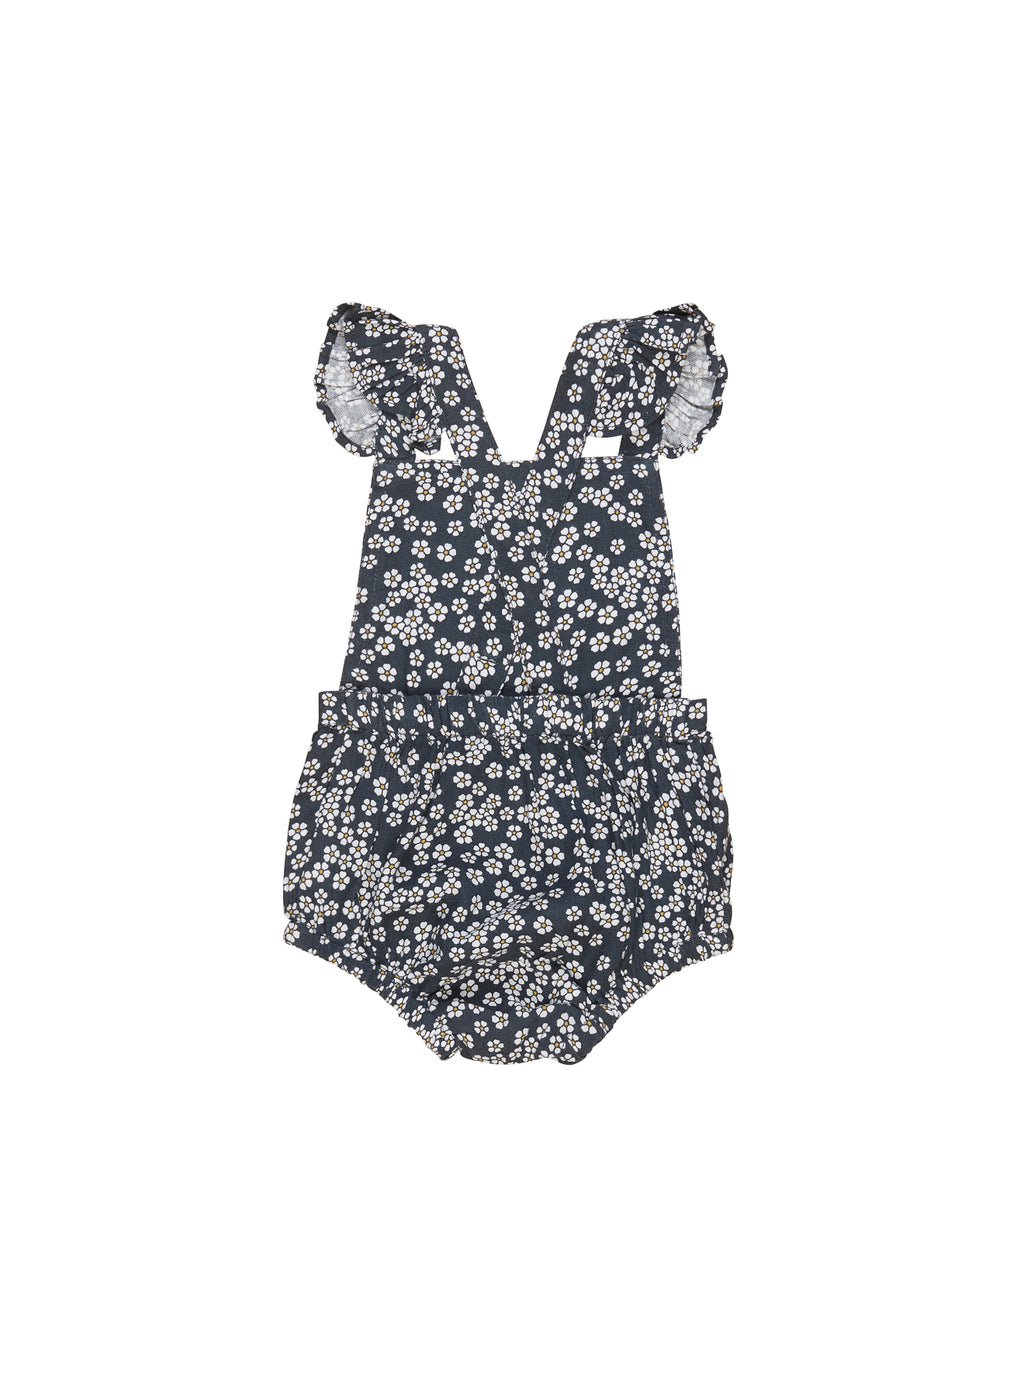 Huxbaby_Flower Frill Playsuit - The Child Hood